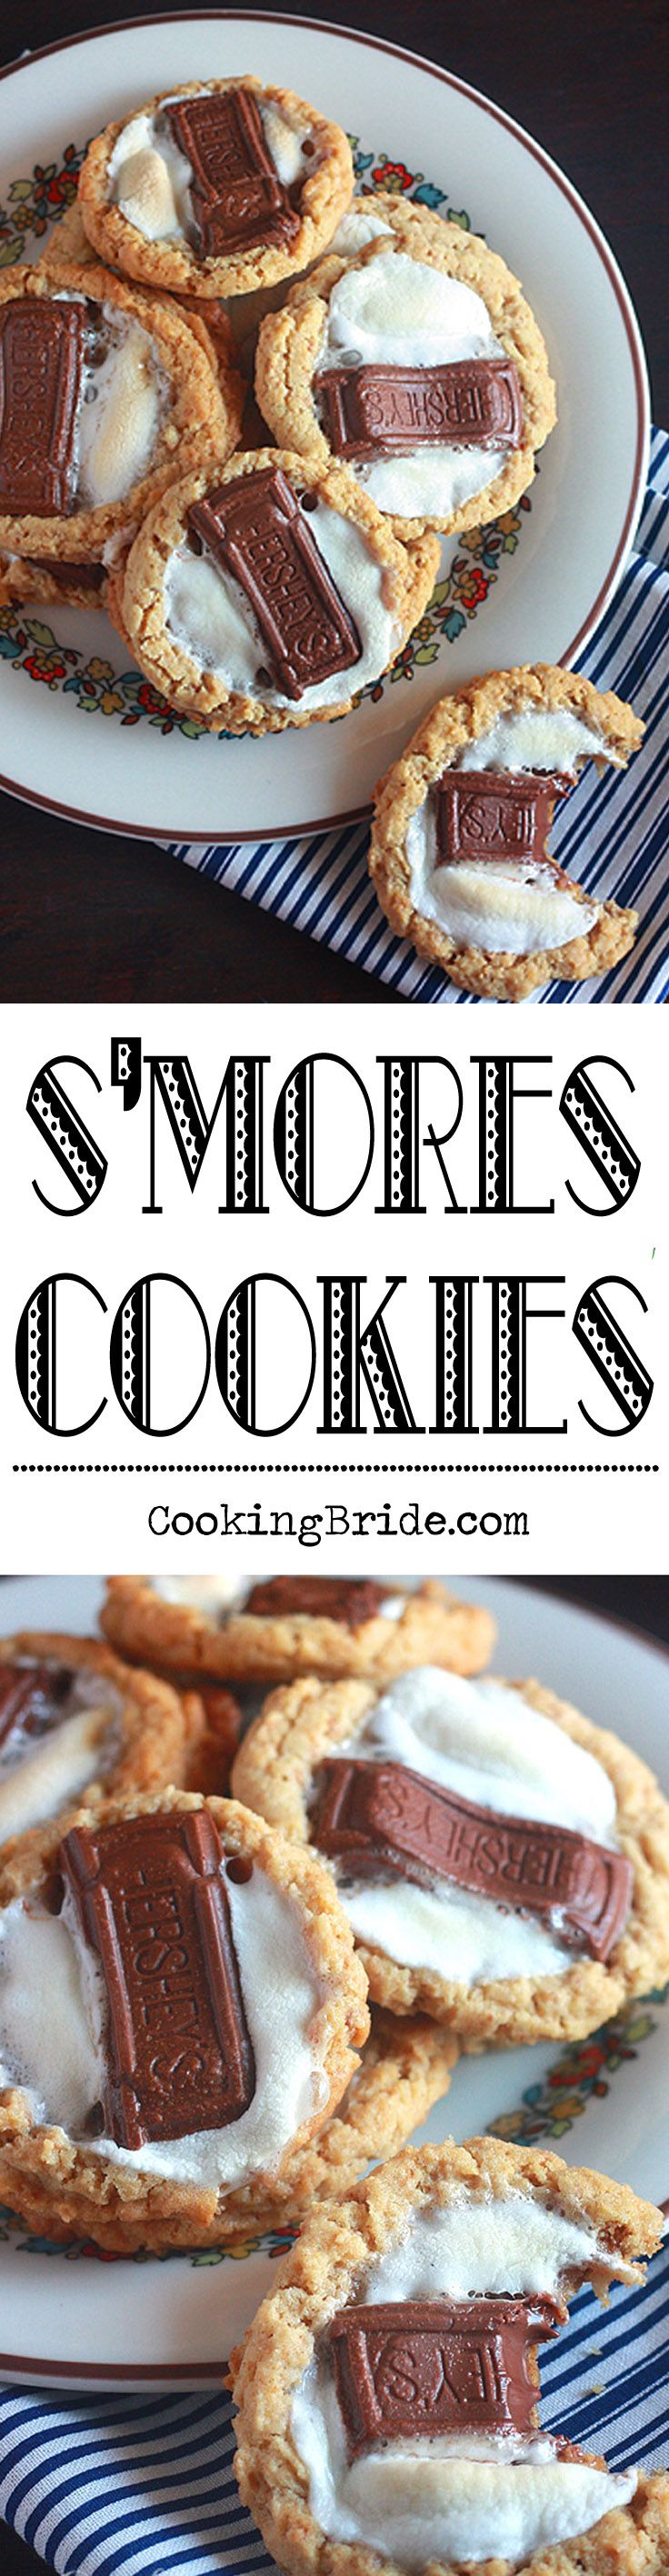 The base of these s'mores cookies is a very tender peanut butter and graham cracker cookie, topped with a chewy marshmallow and a melty piece of milk chocolate.